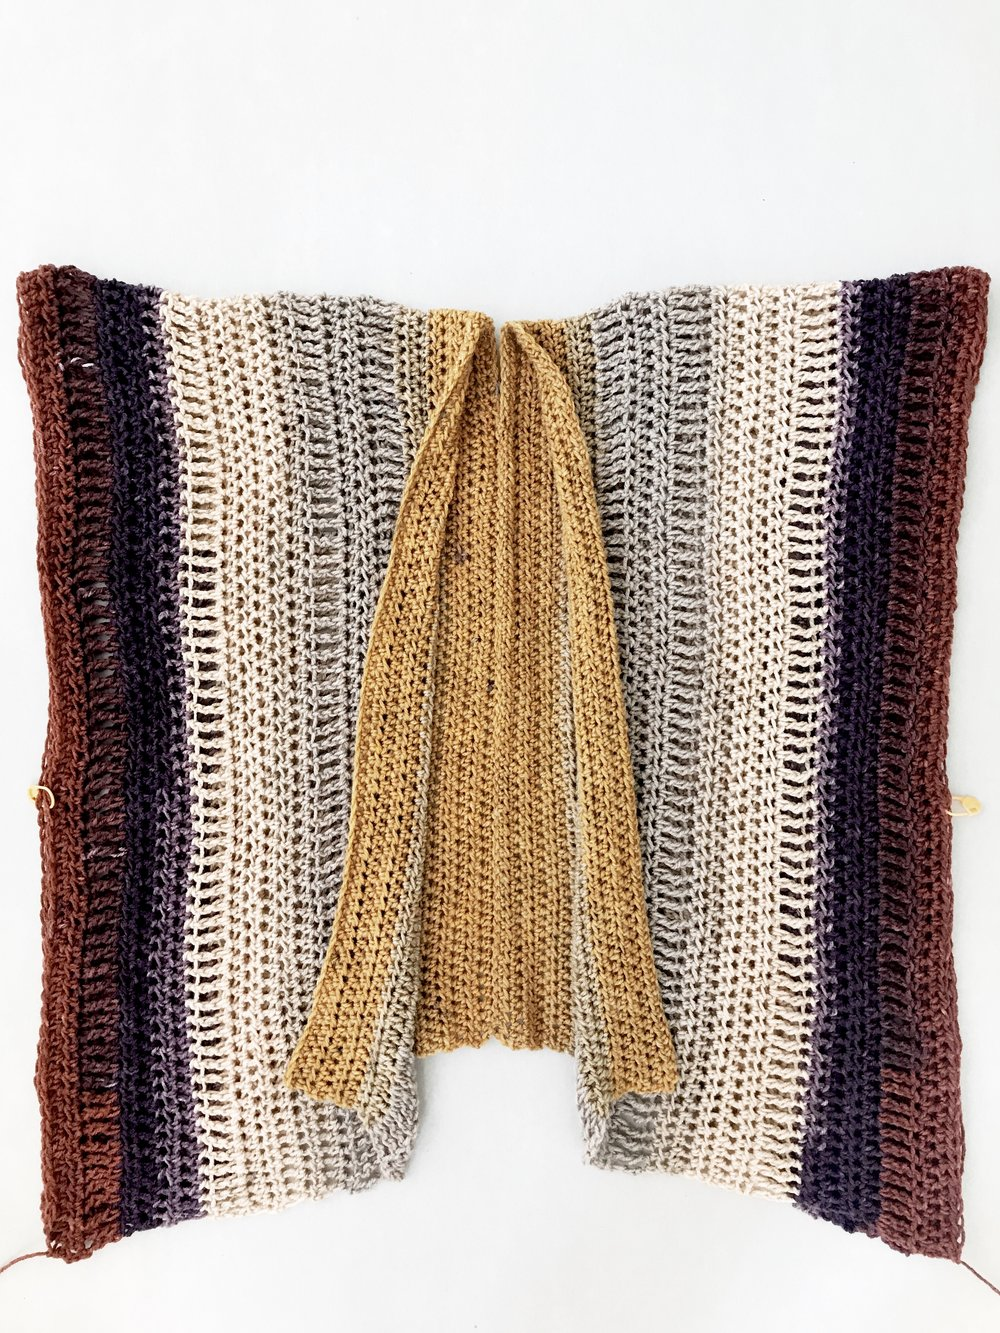 Swallowtail Cardigan Pattern by Two of Wands